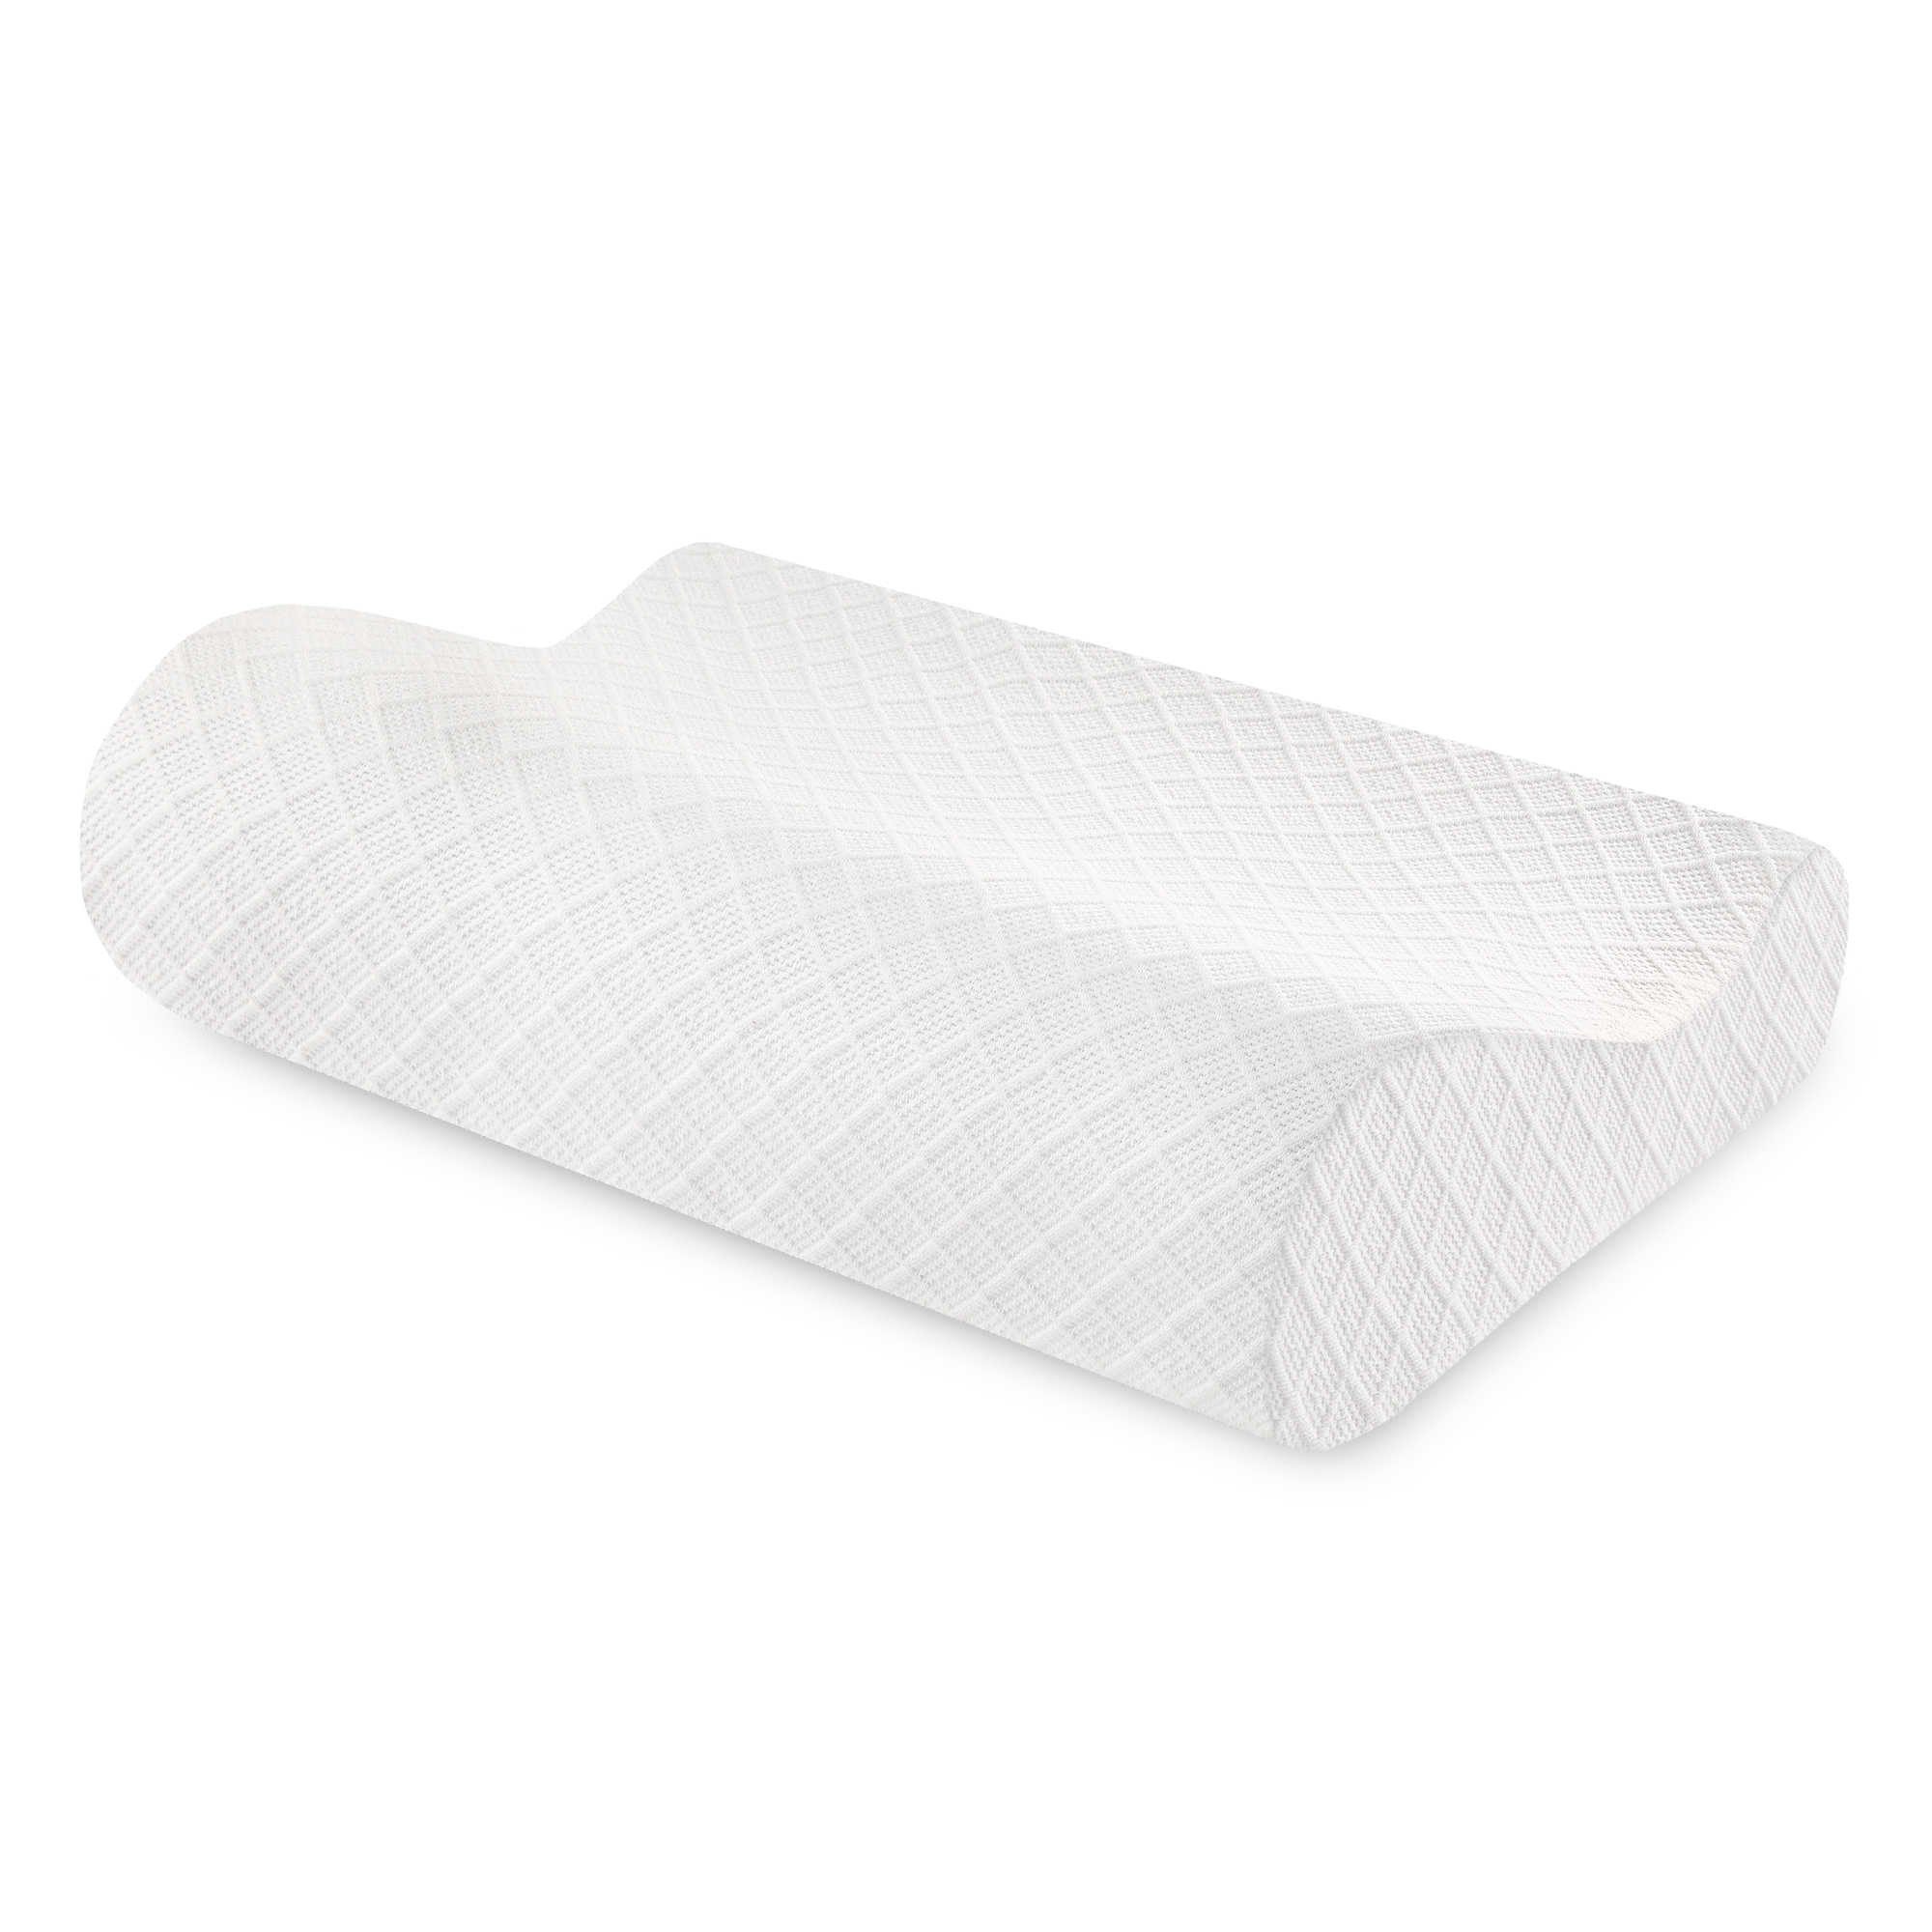 image of Therapedic® Classic Contour Bed Pillow